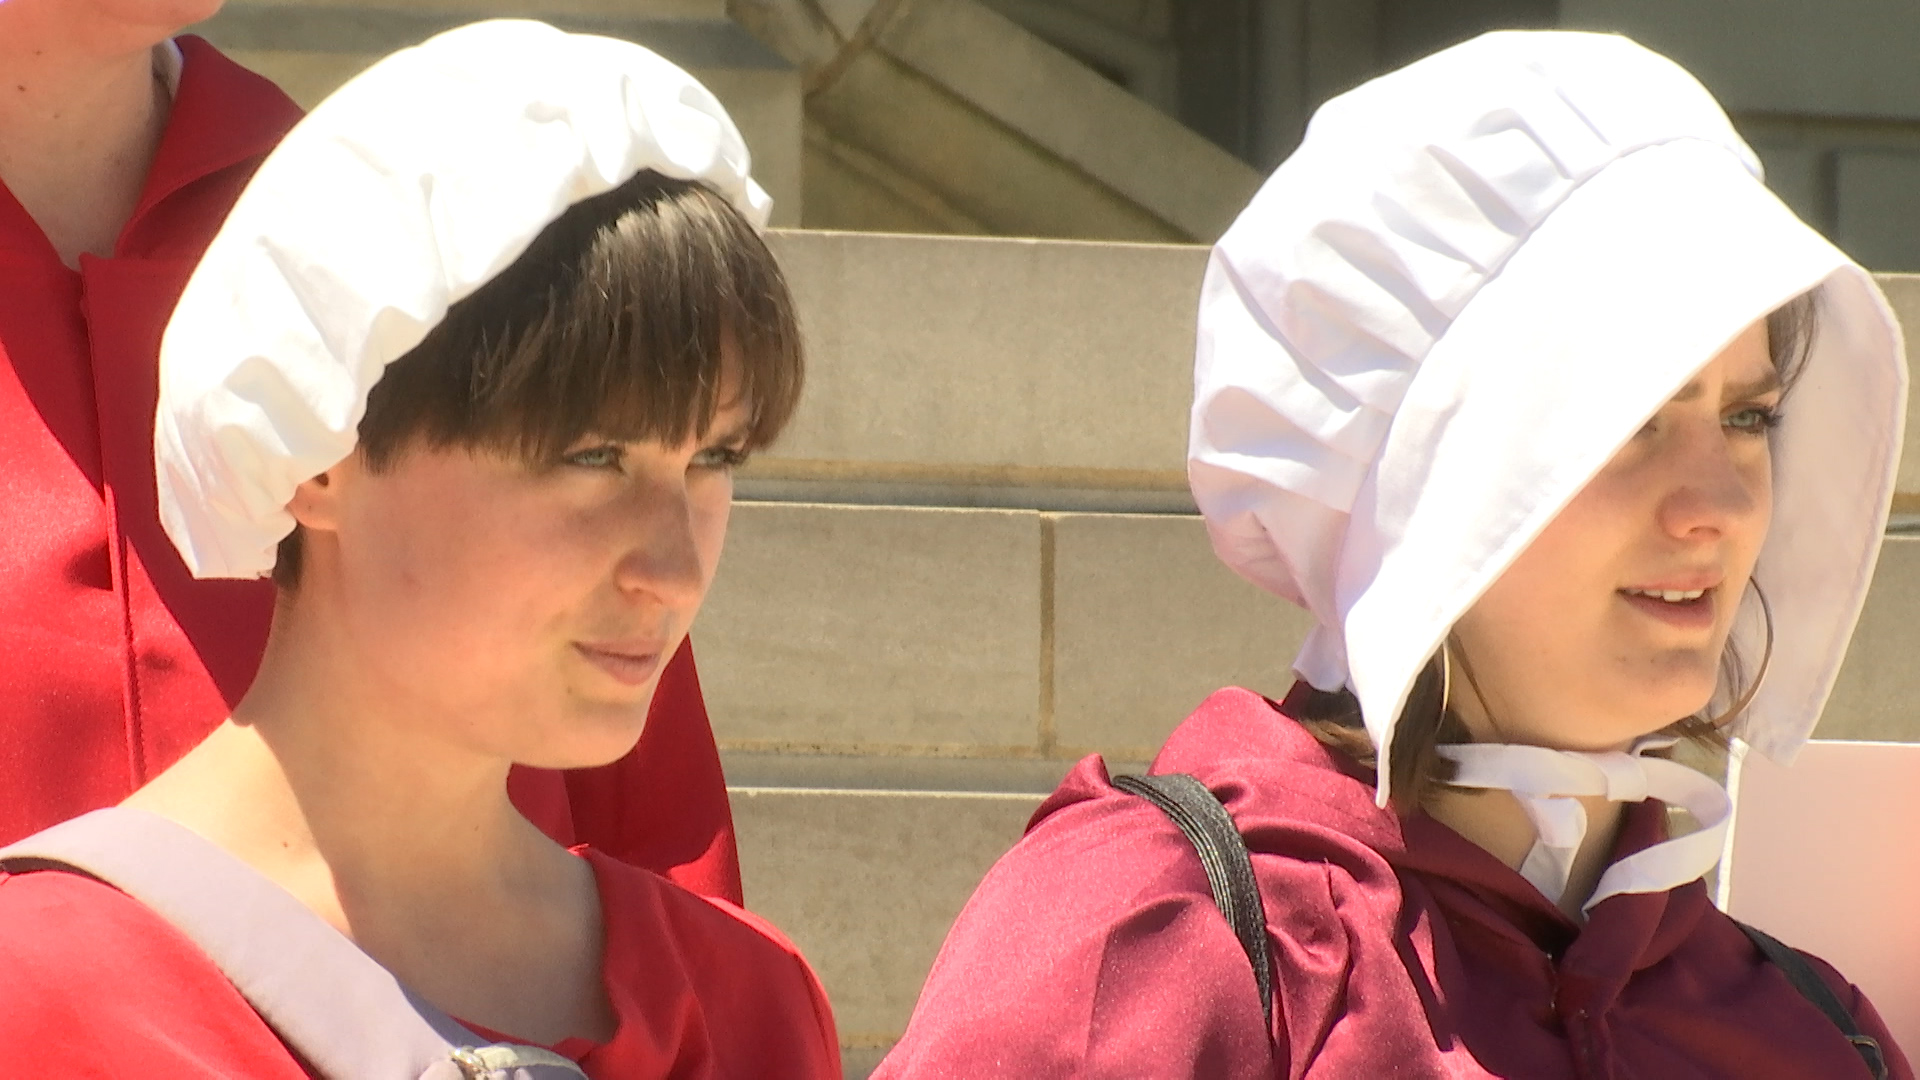 Women dress as handmaids, protest recent abortion ban laws